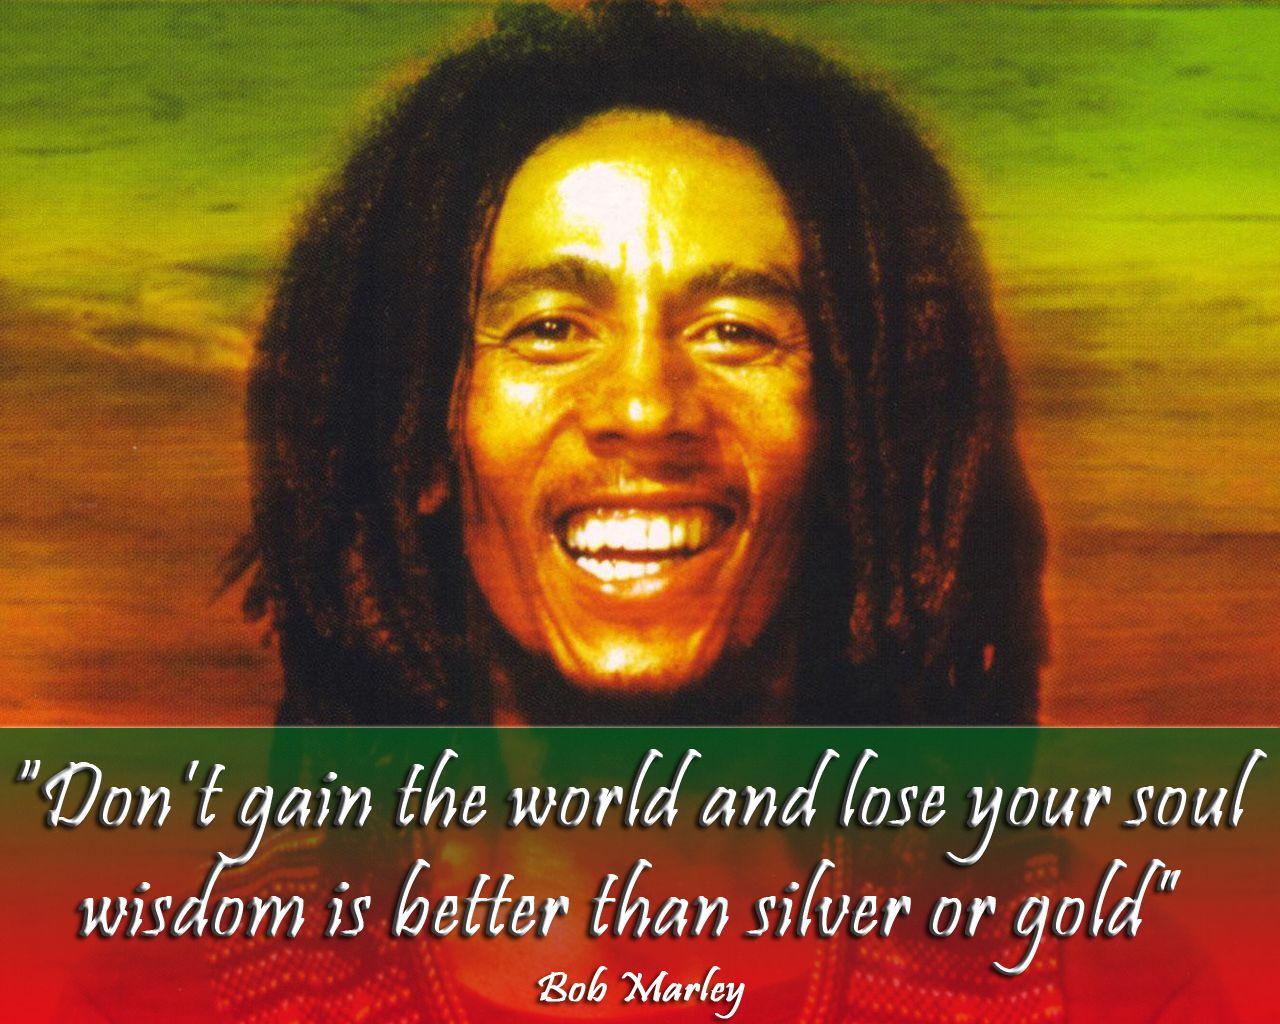 Wisdom Is Better Than Silver Or Gold Bob Marley Bob Marley Bob Marley Quotes Marley